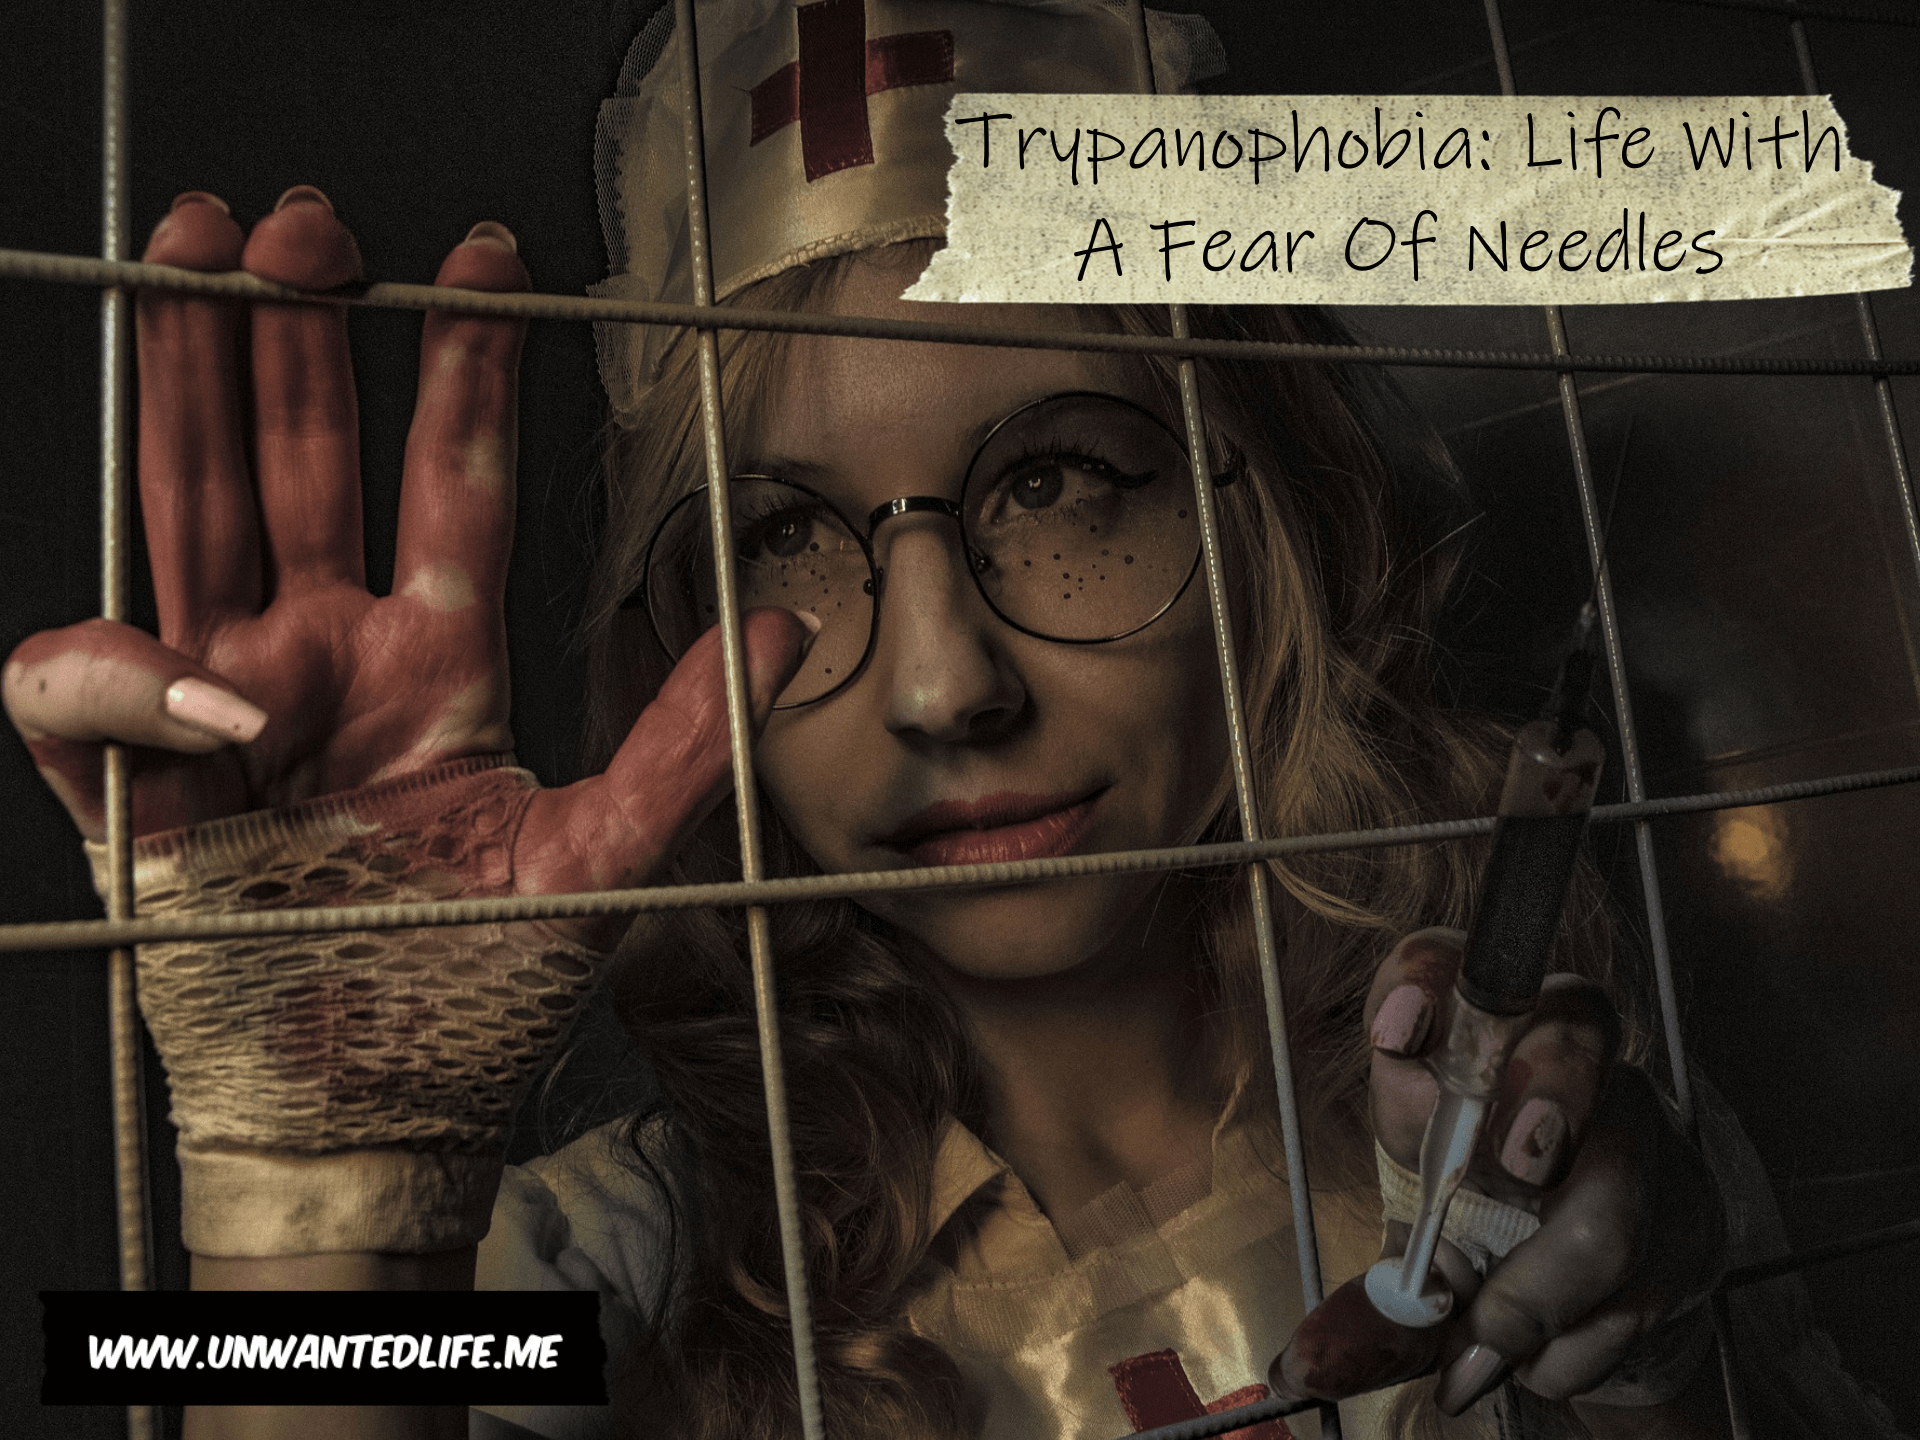 A picture of a bloody nurse with a syringe behind a metal fence with the article title - Trypanophobia: Life With A Fear Of Needles - in the top right corner of the image